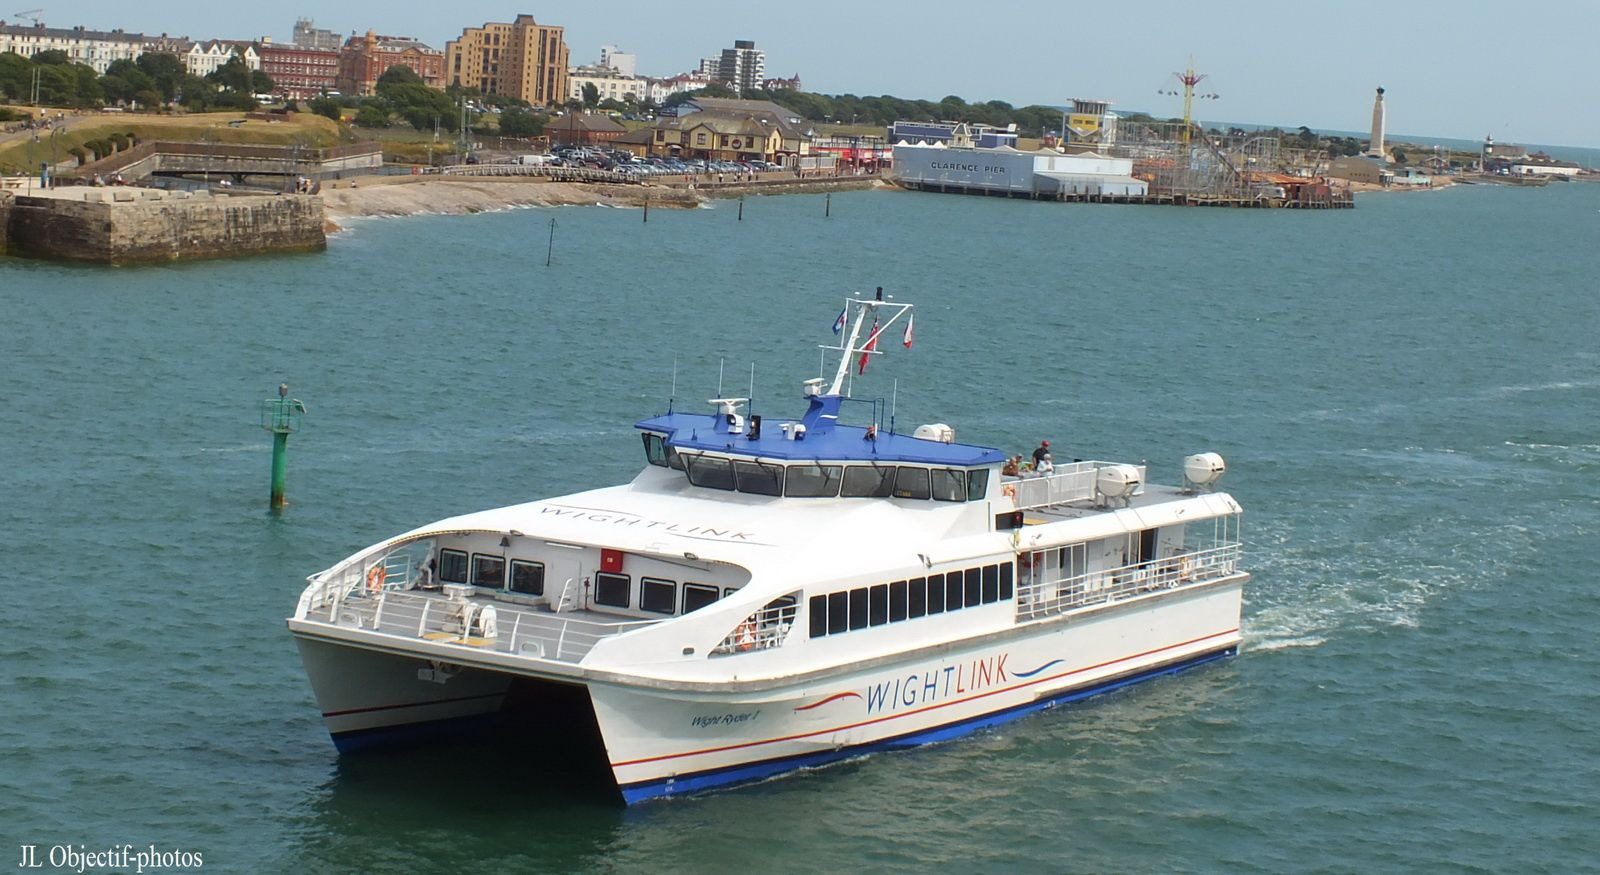 Ferry from the isle of Wight coming into Portsmouth - England